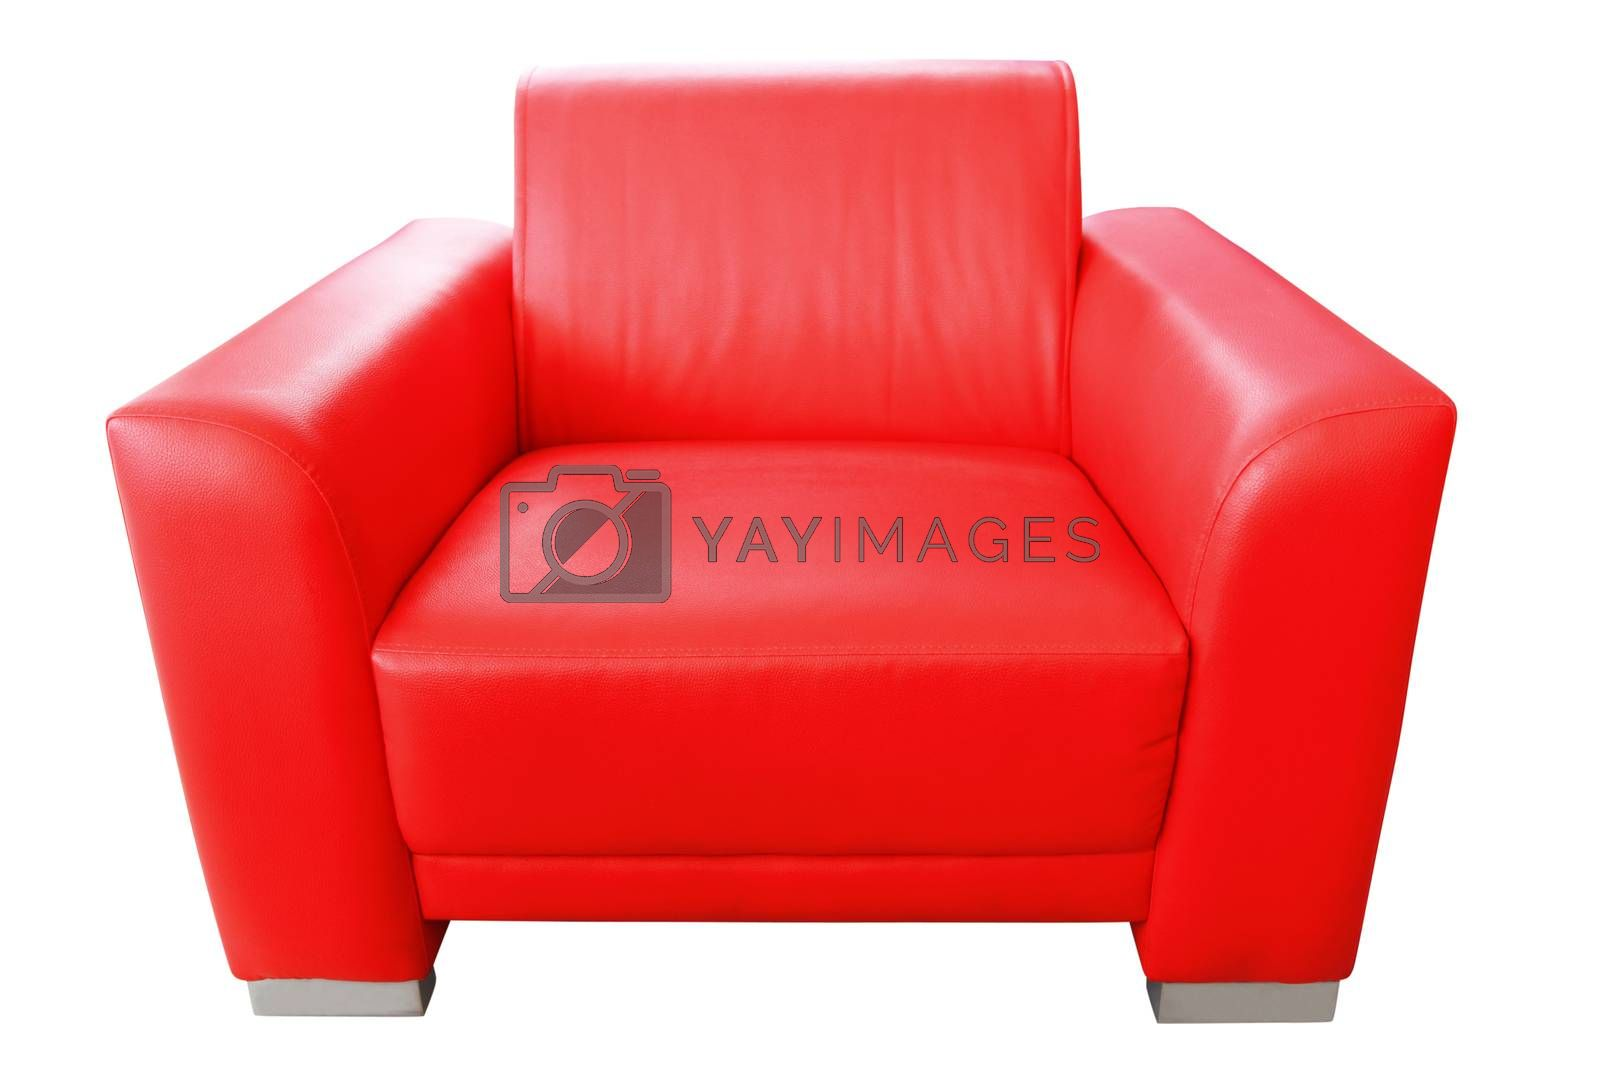 vintage red sofa isolated in white background